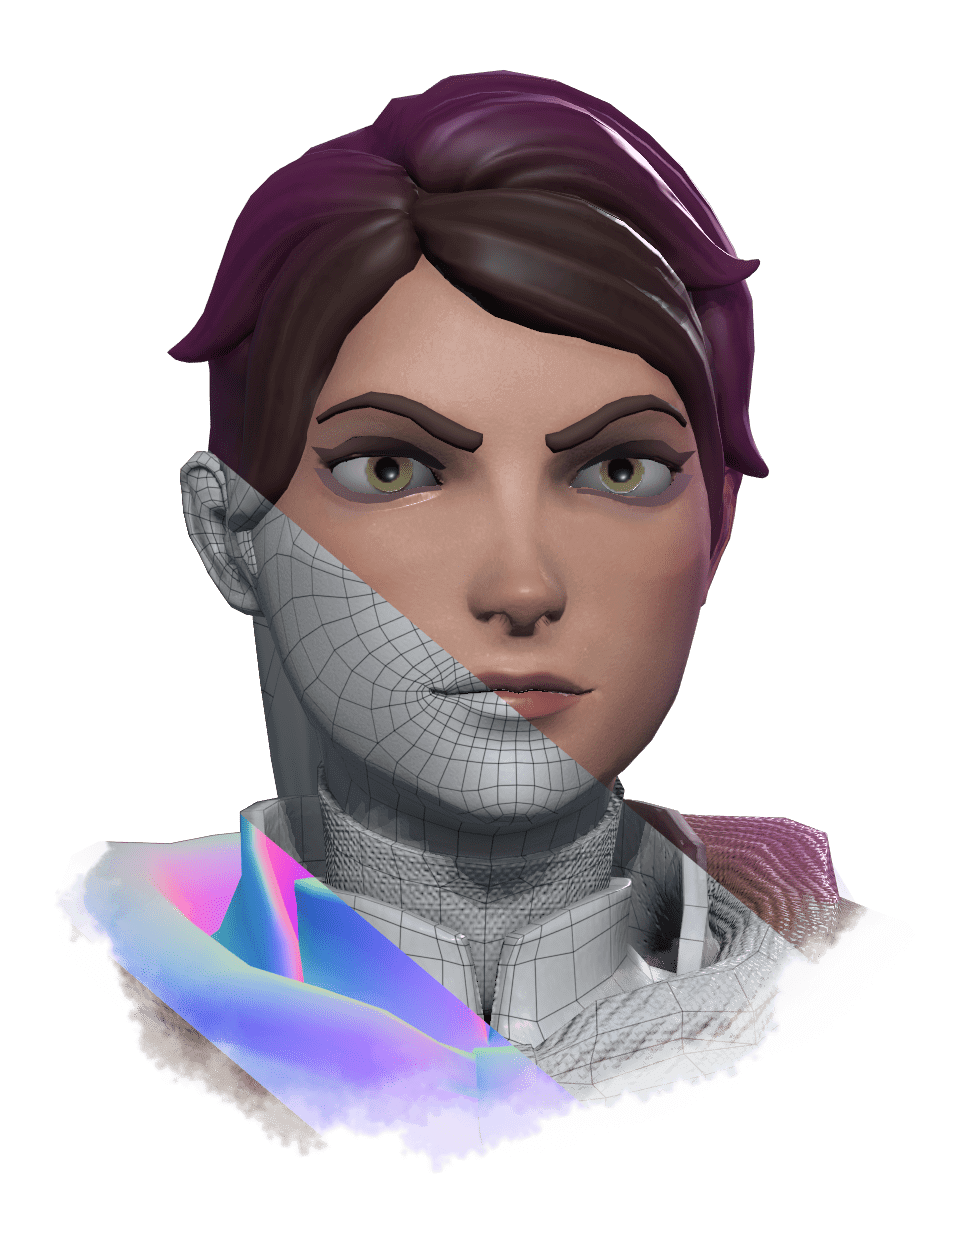 3D Wireframe Female Face